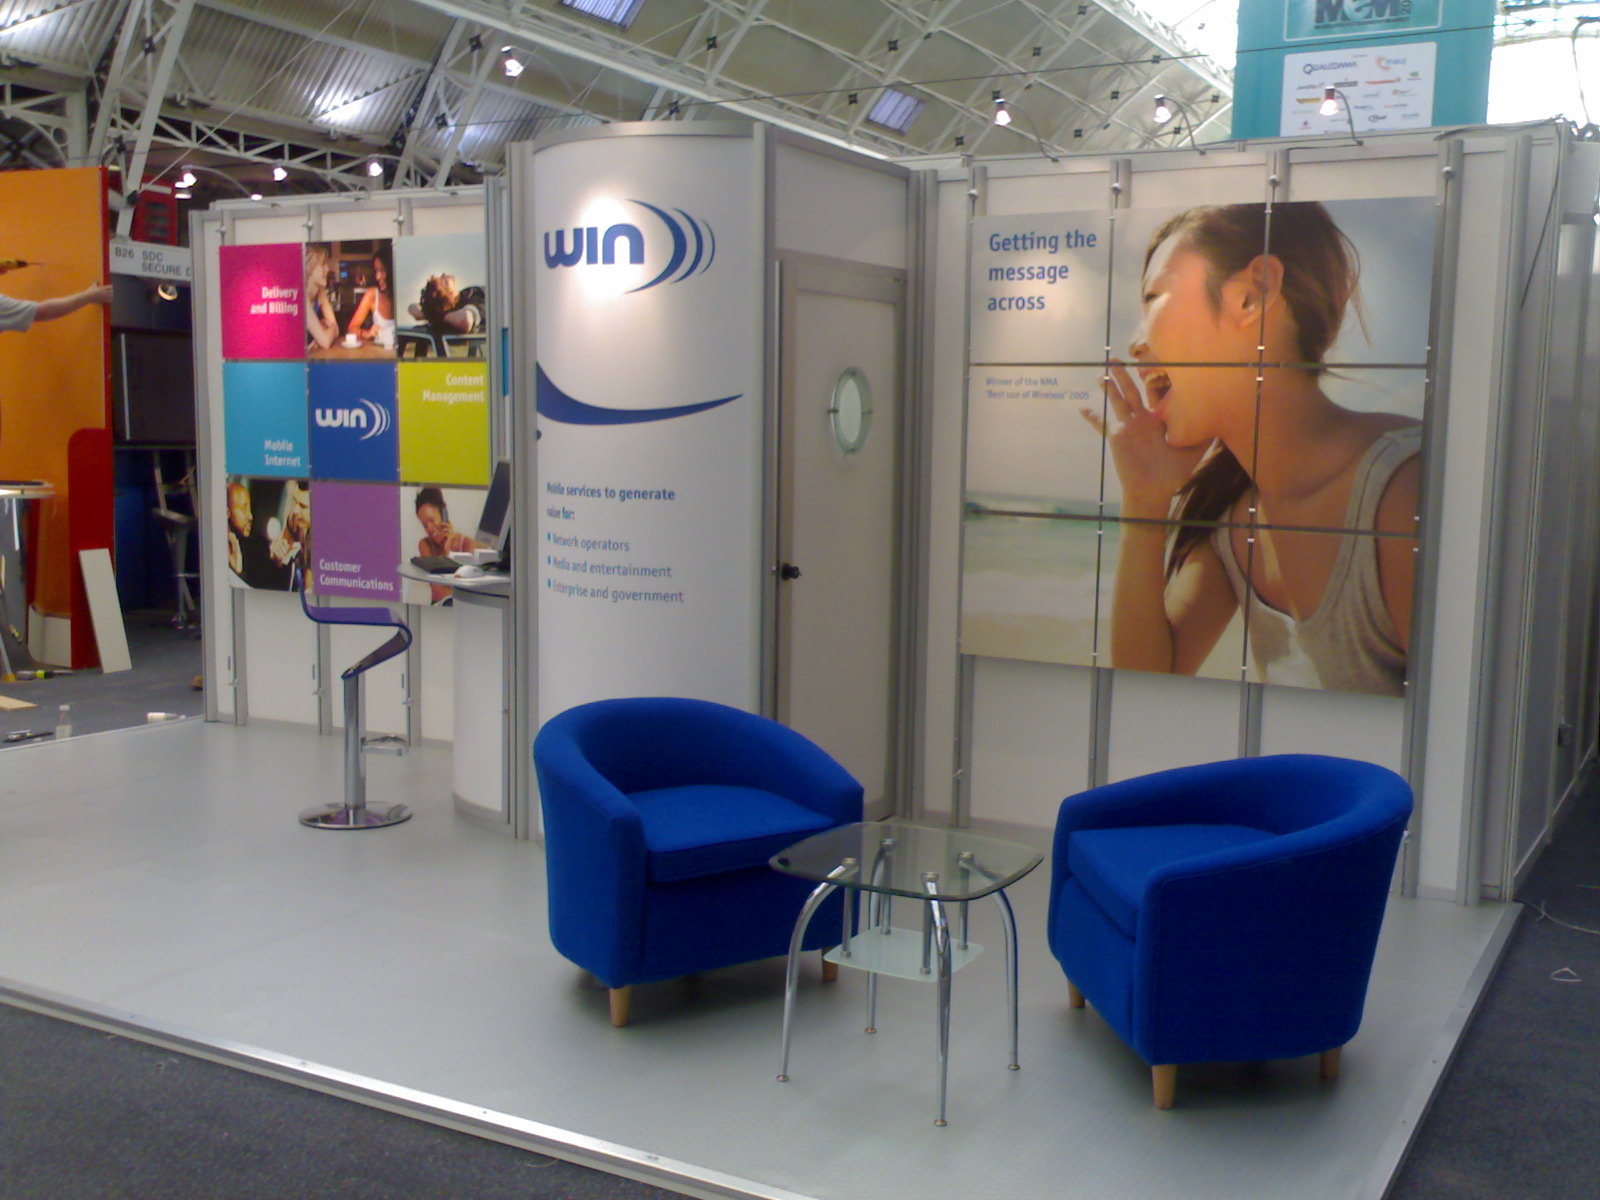 Marketing Exhibition Stand Xo : Marketing your exhibition stand pre